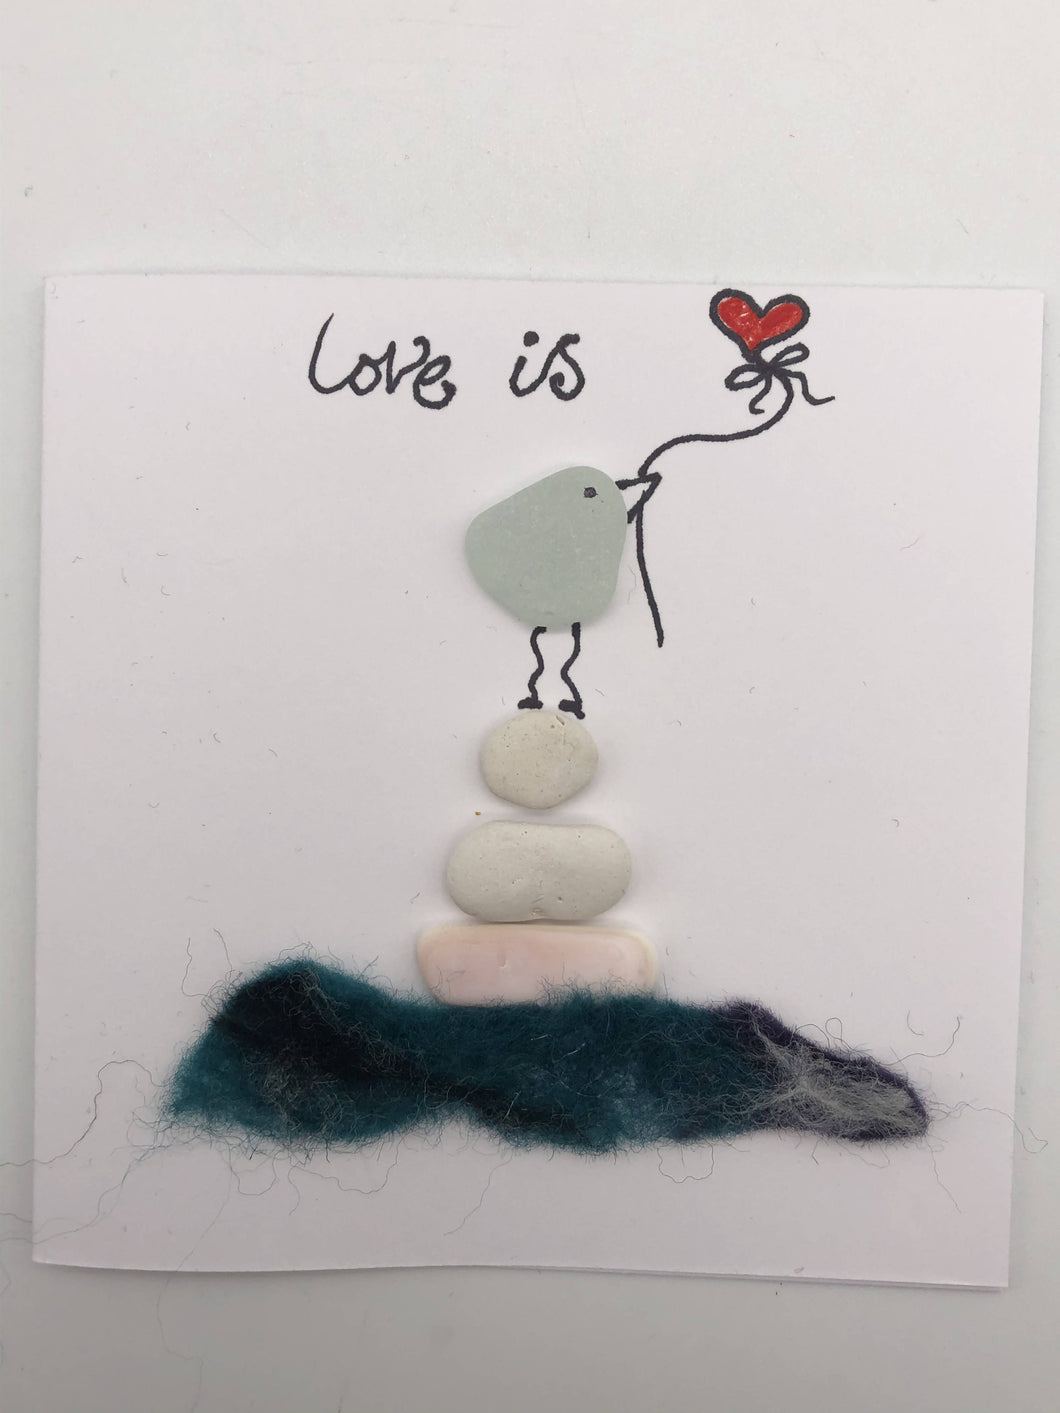 Love is small card (0025)